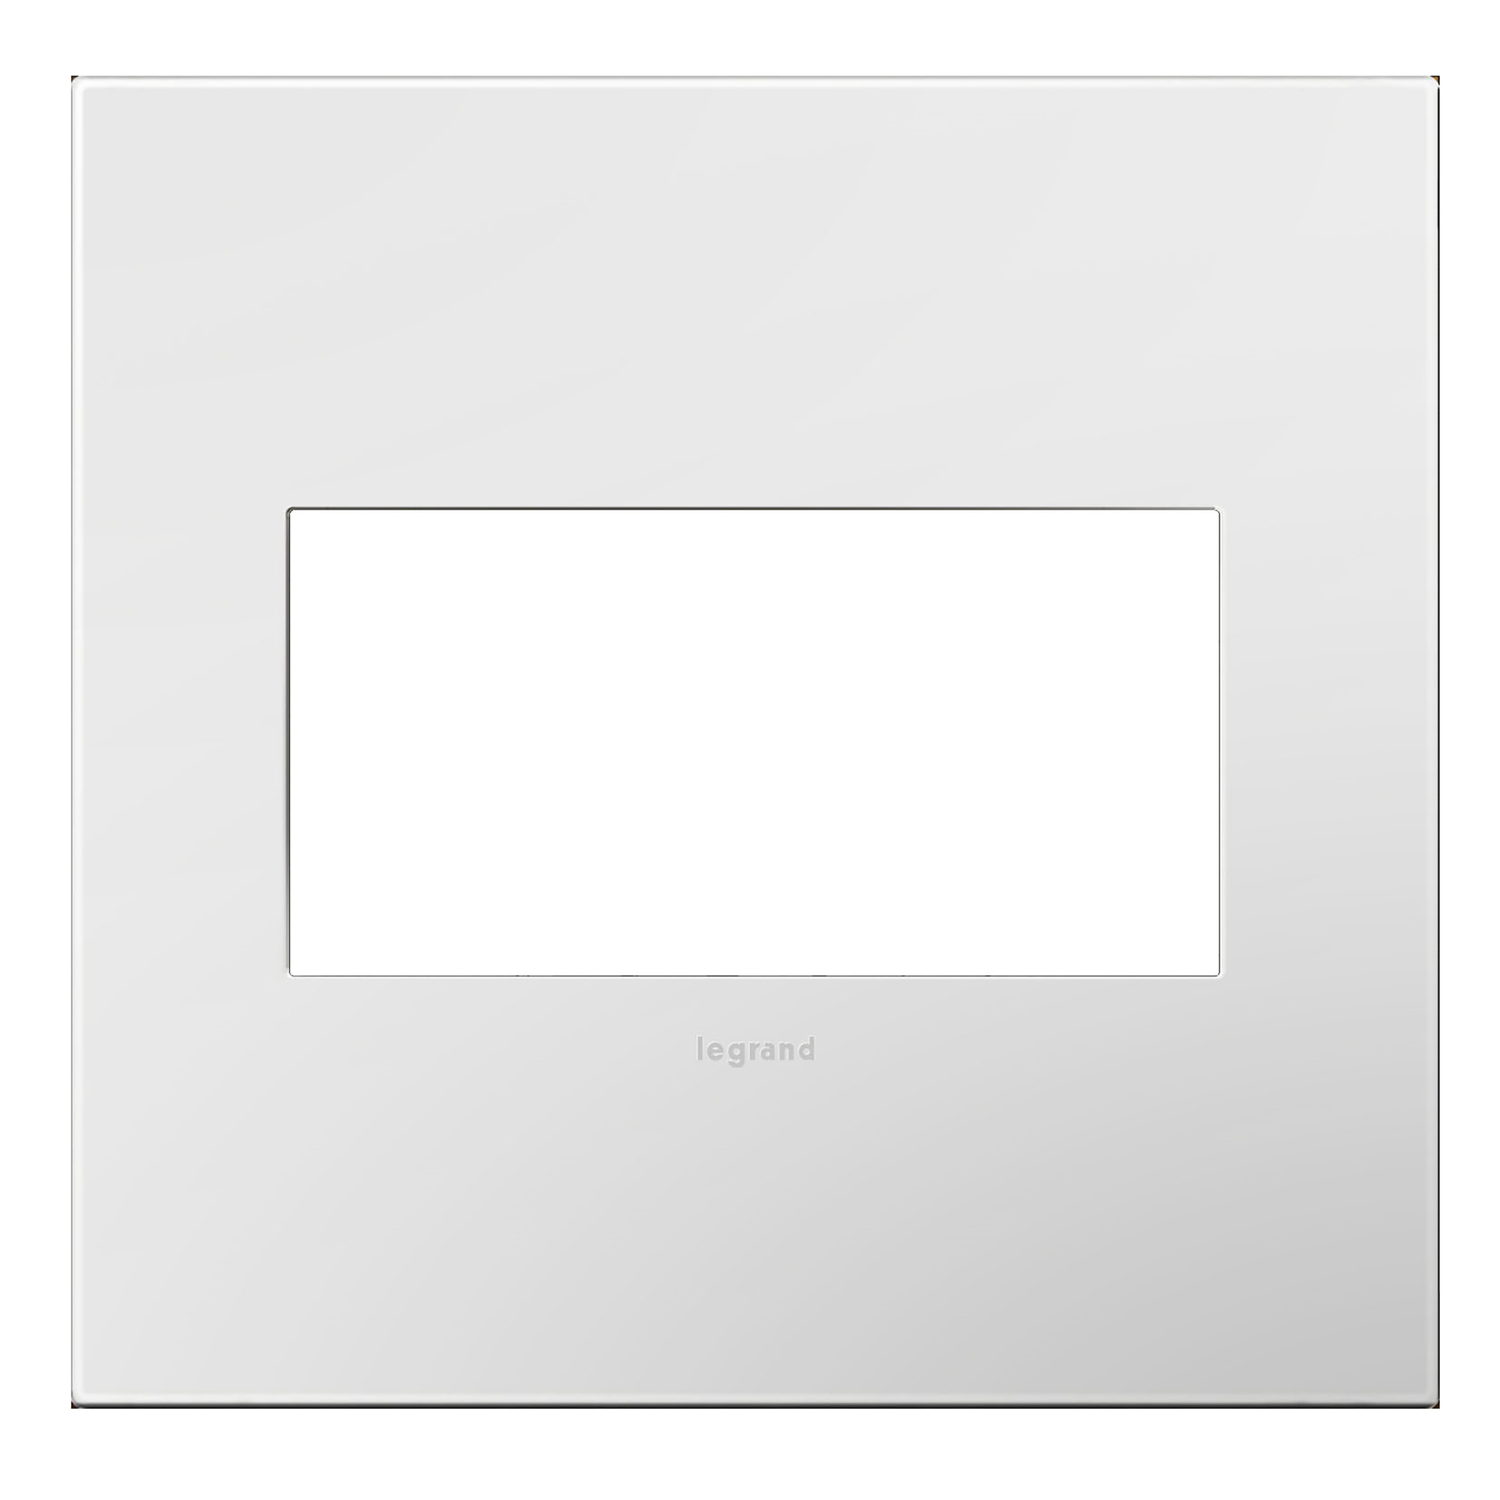 Legrand  Adorne  White  2 gang Thermoplastic  GFCI/Rocker  Wall Plate  1 pk